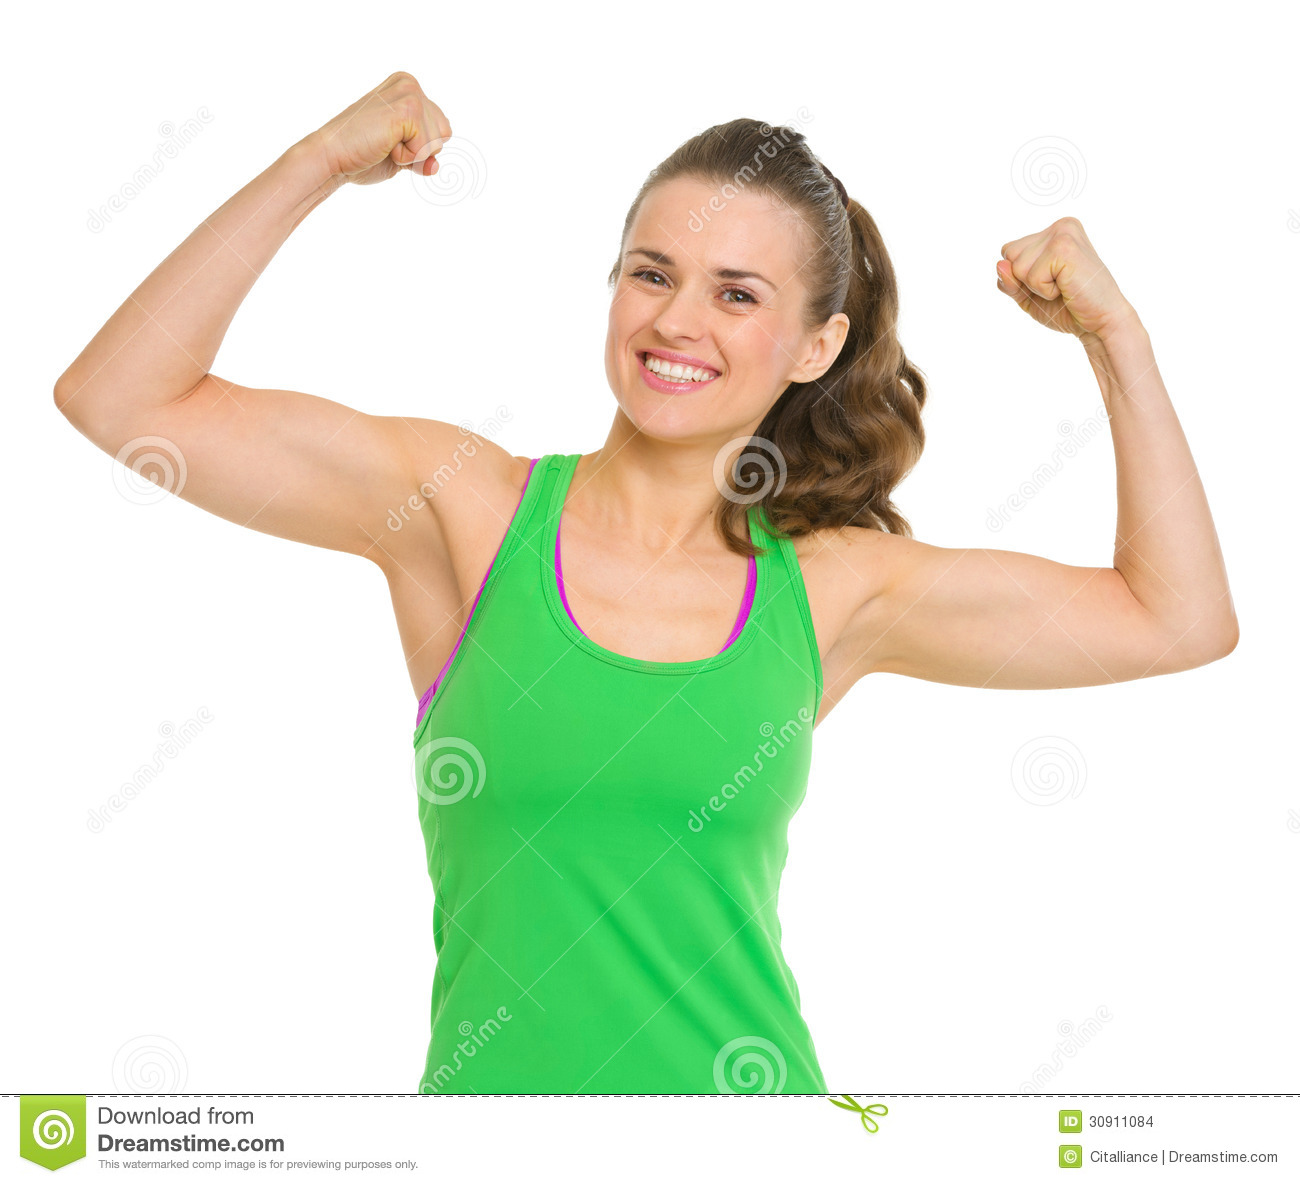 happy-fitness-young-woman-showing-biceps